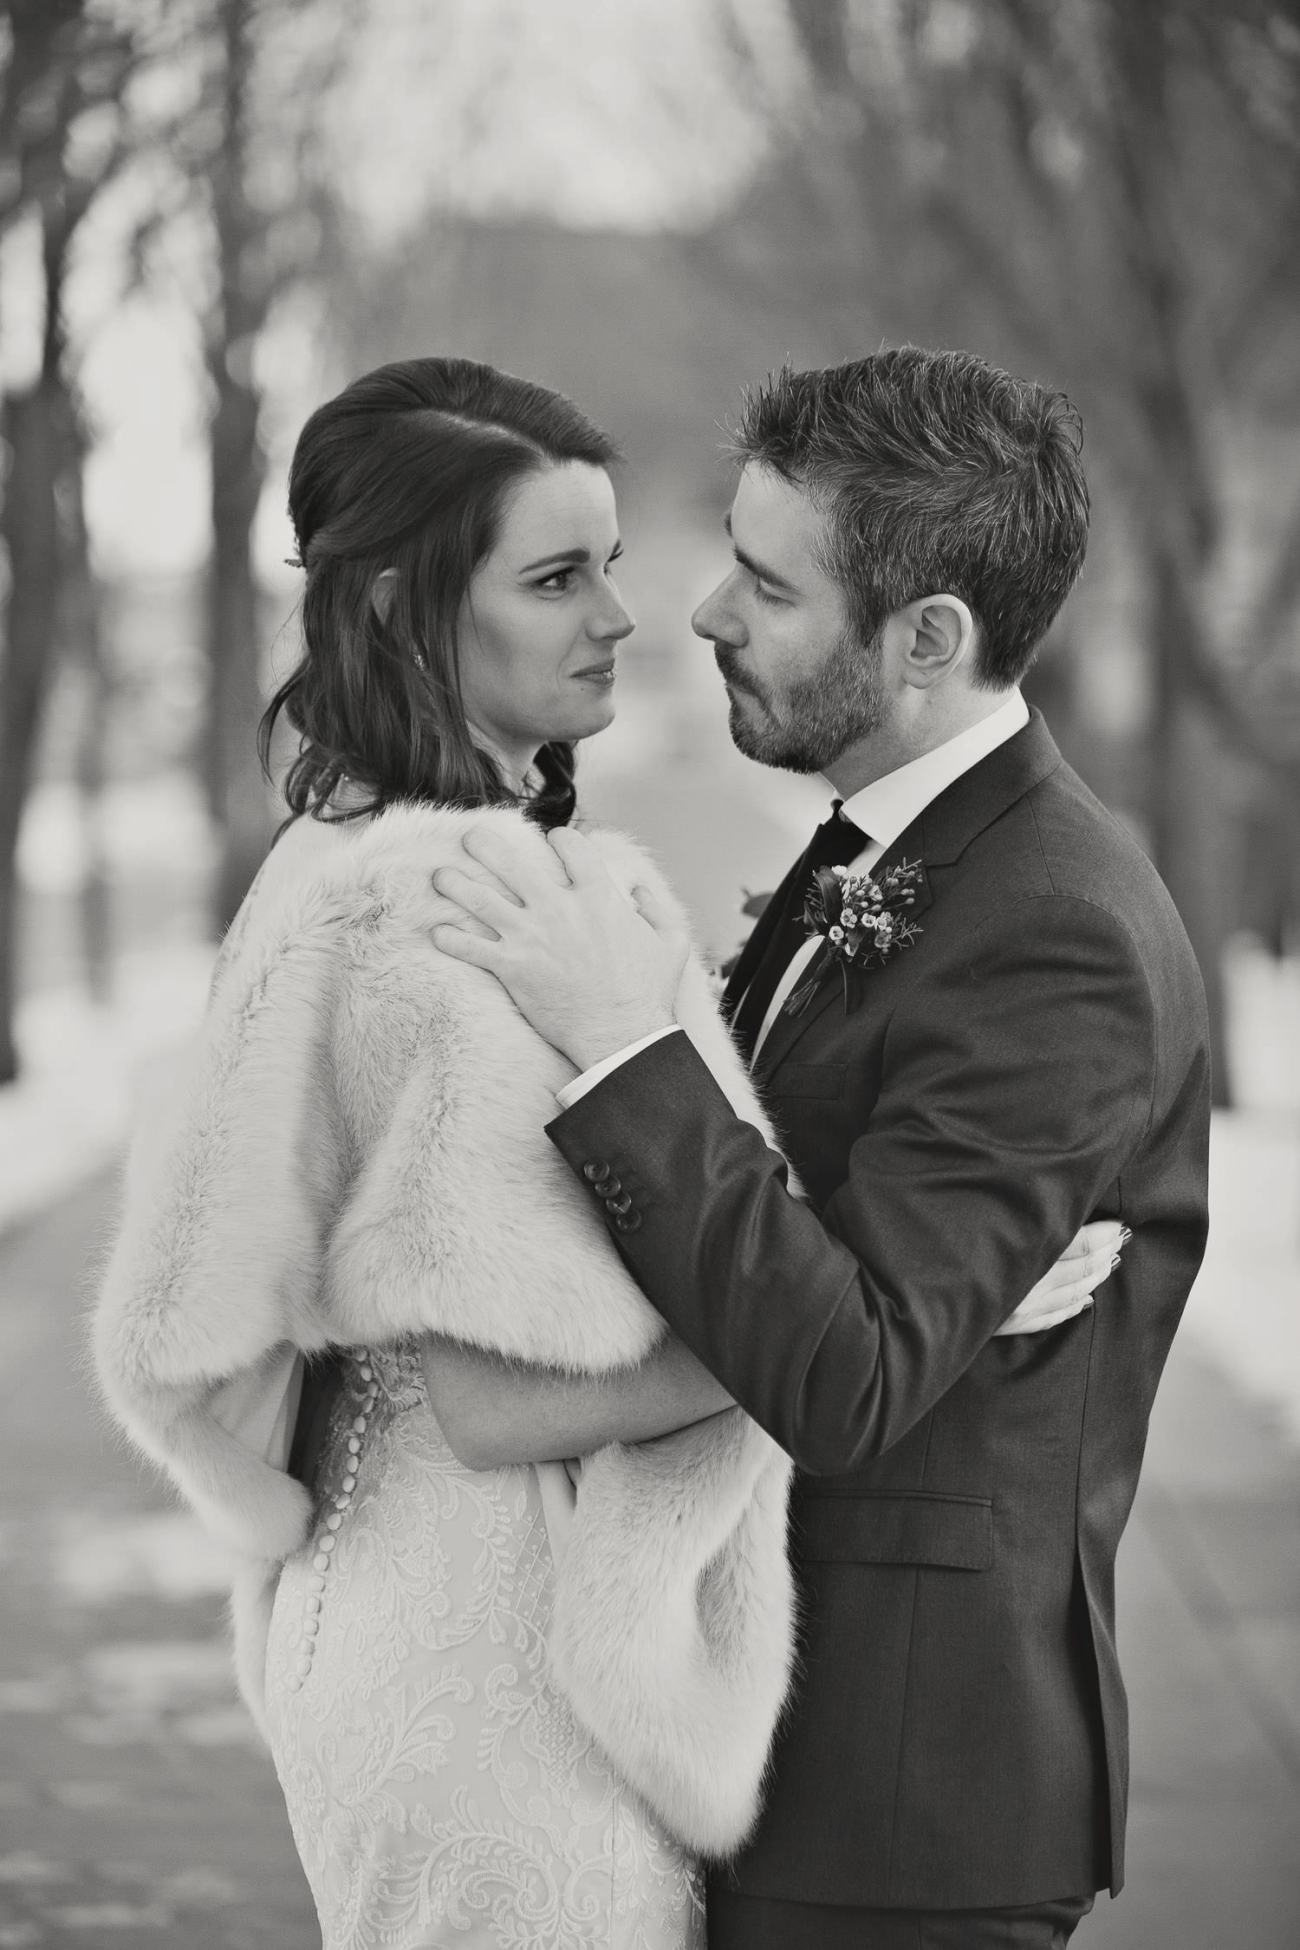 Winter wedding portraits outside Venue 308 captured by Tara Whittaker Photoography